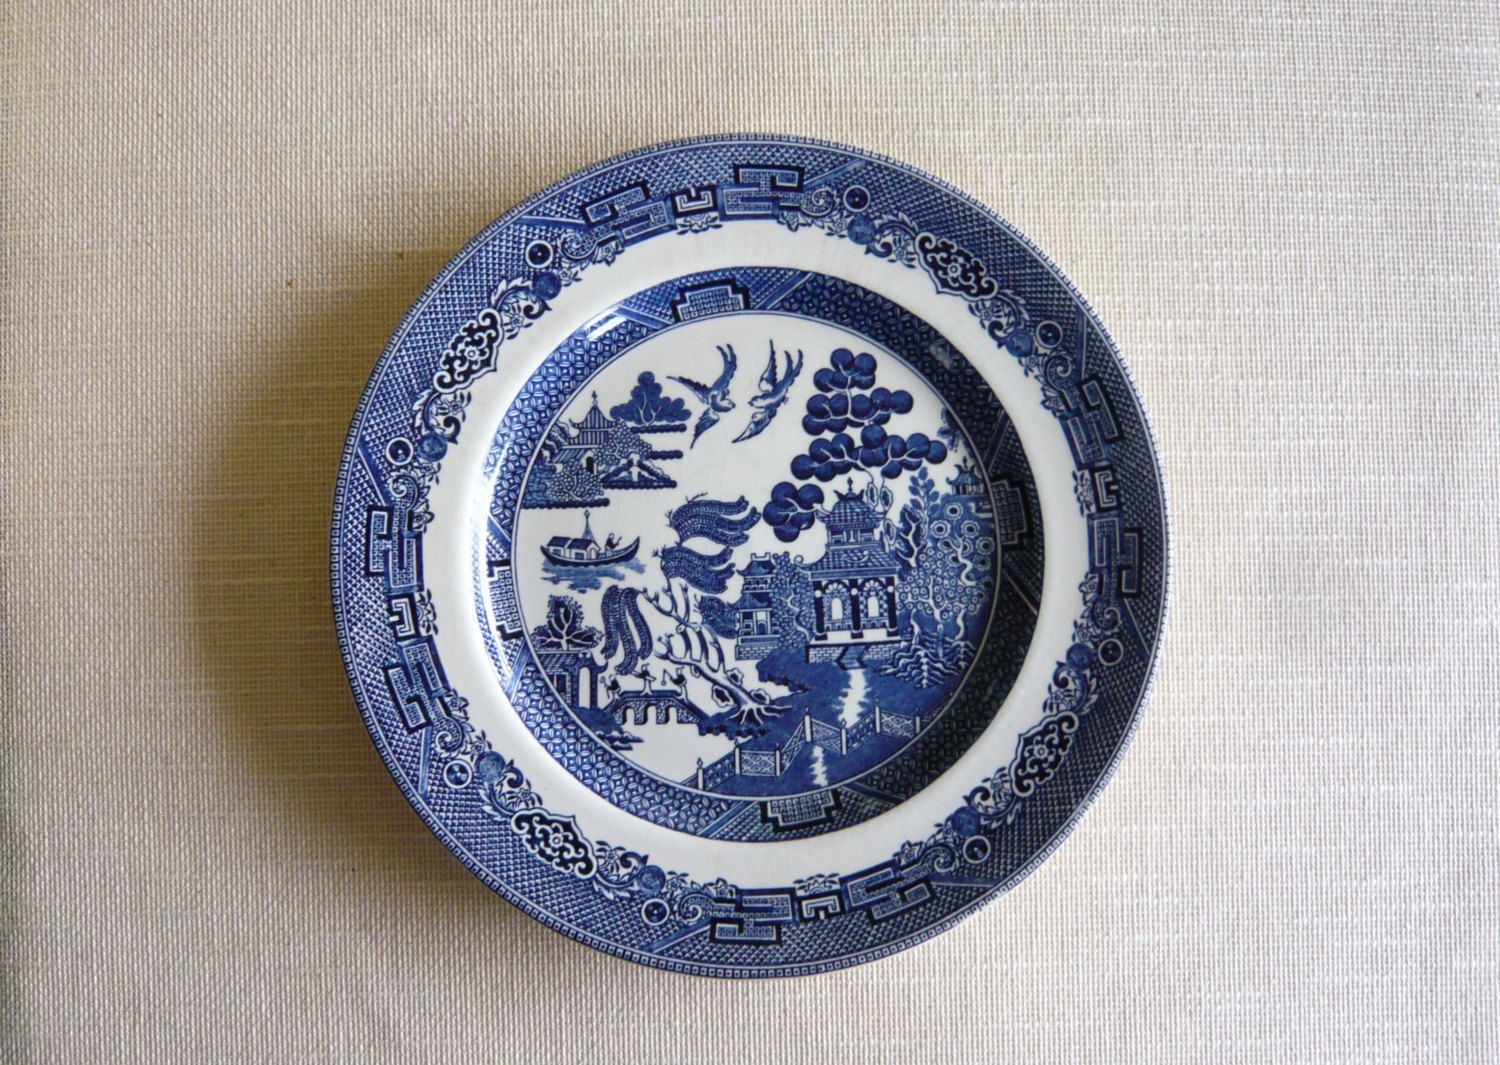 Johnson Brothers Willow Pattern Dinner Plate Blue and White 10 1/4 Inches | Willow pattern Dinners and Blue china & Johnson Brothers Willow Pattern Dinner Plate Blue and White 10 1/4 ...